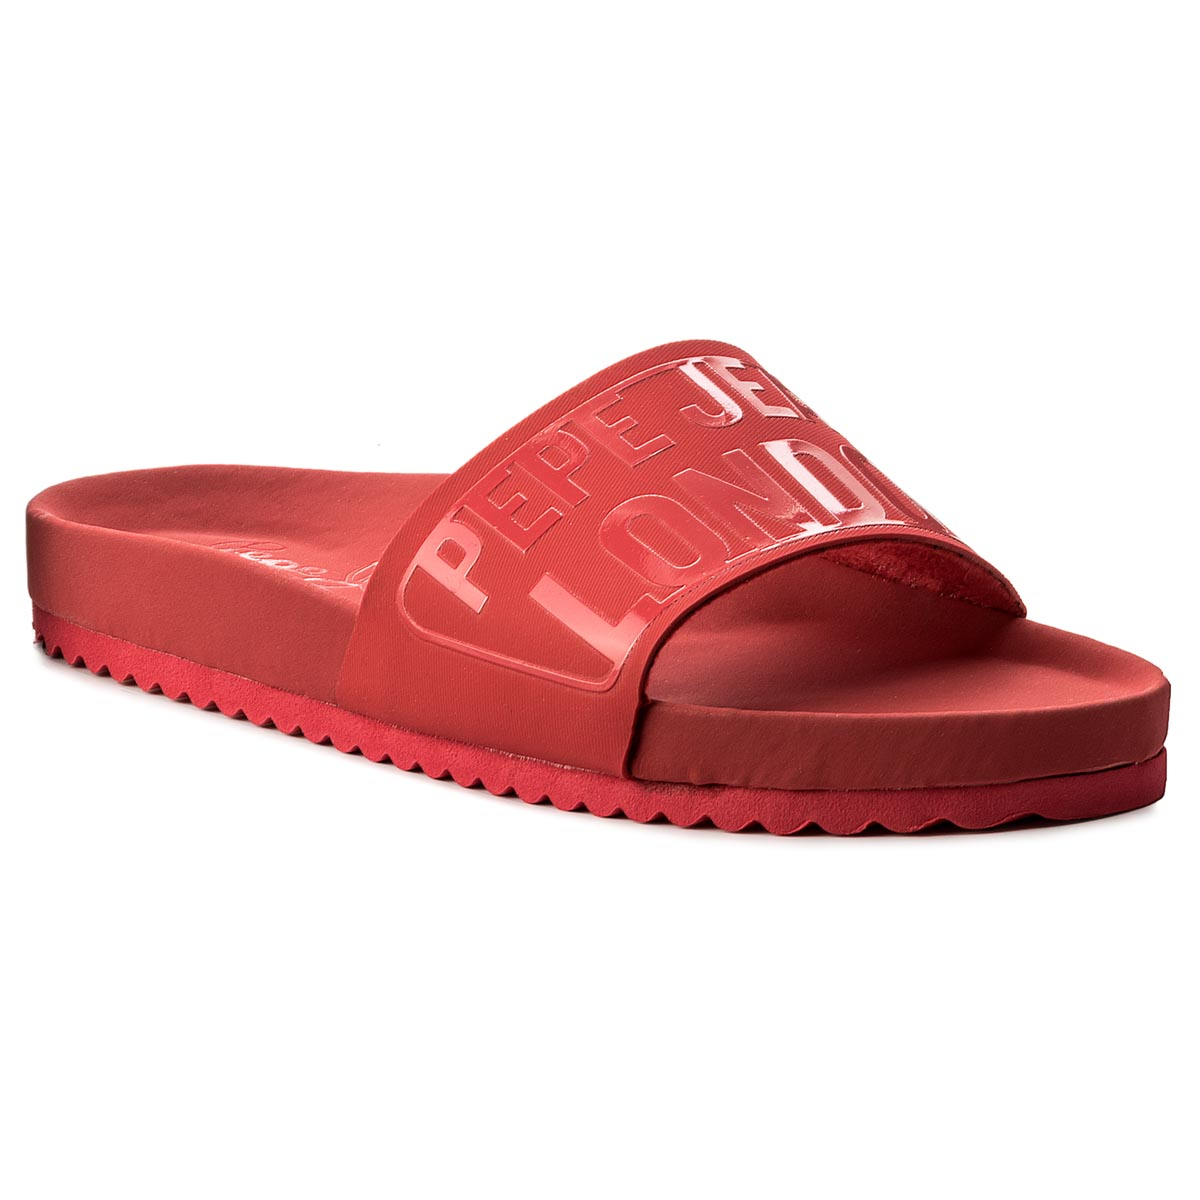 Klapki PEPE JEANS - Bio Royal Block L PLS90349 Red 255